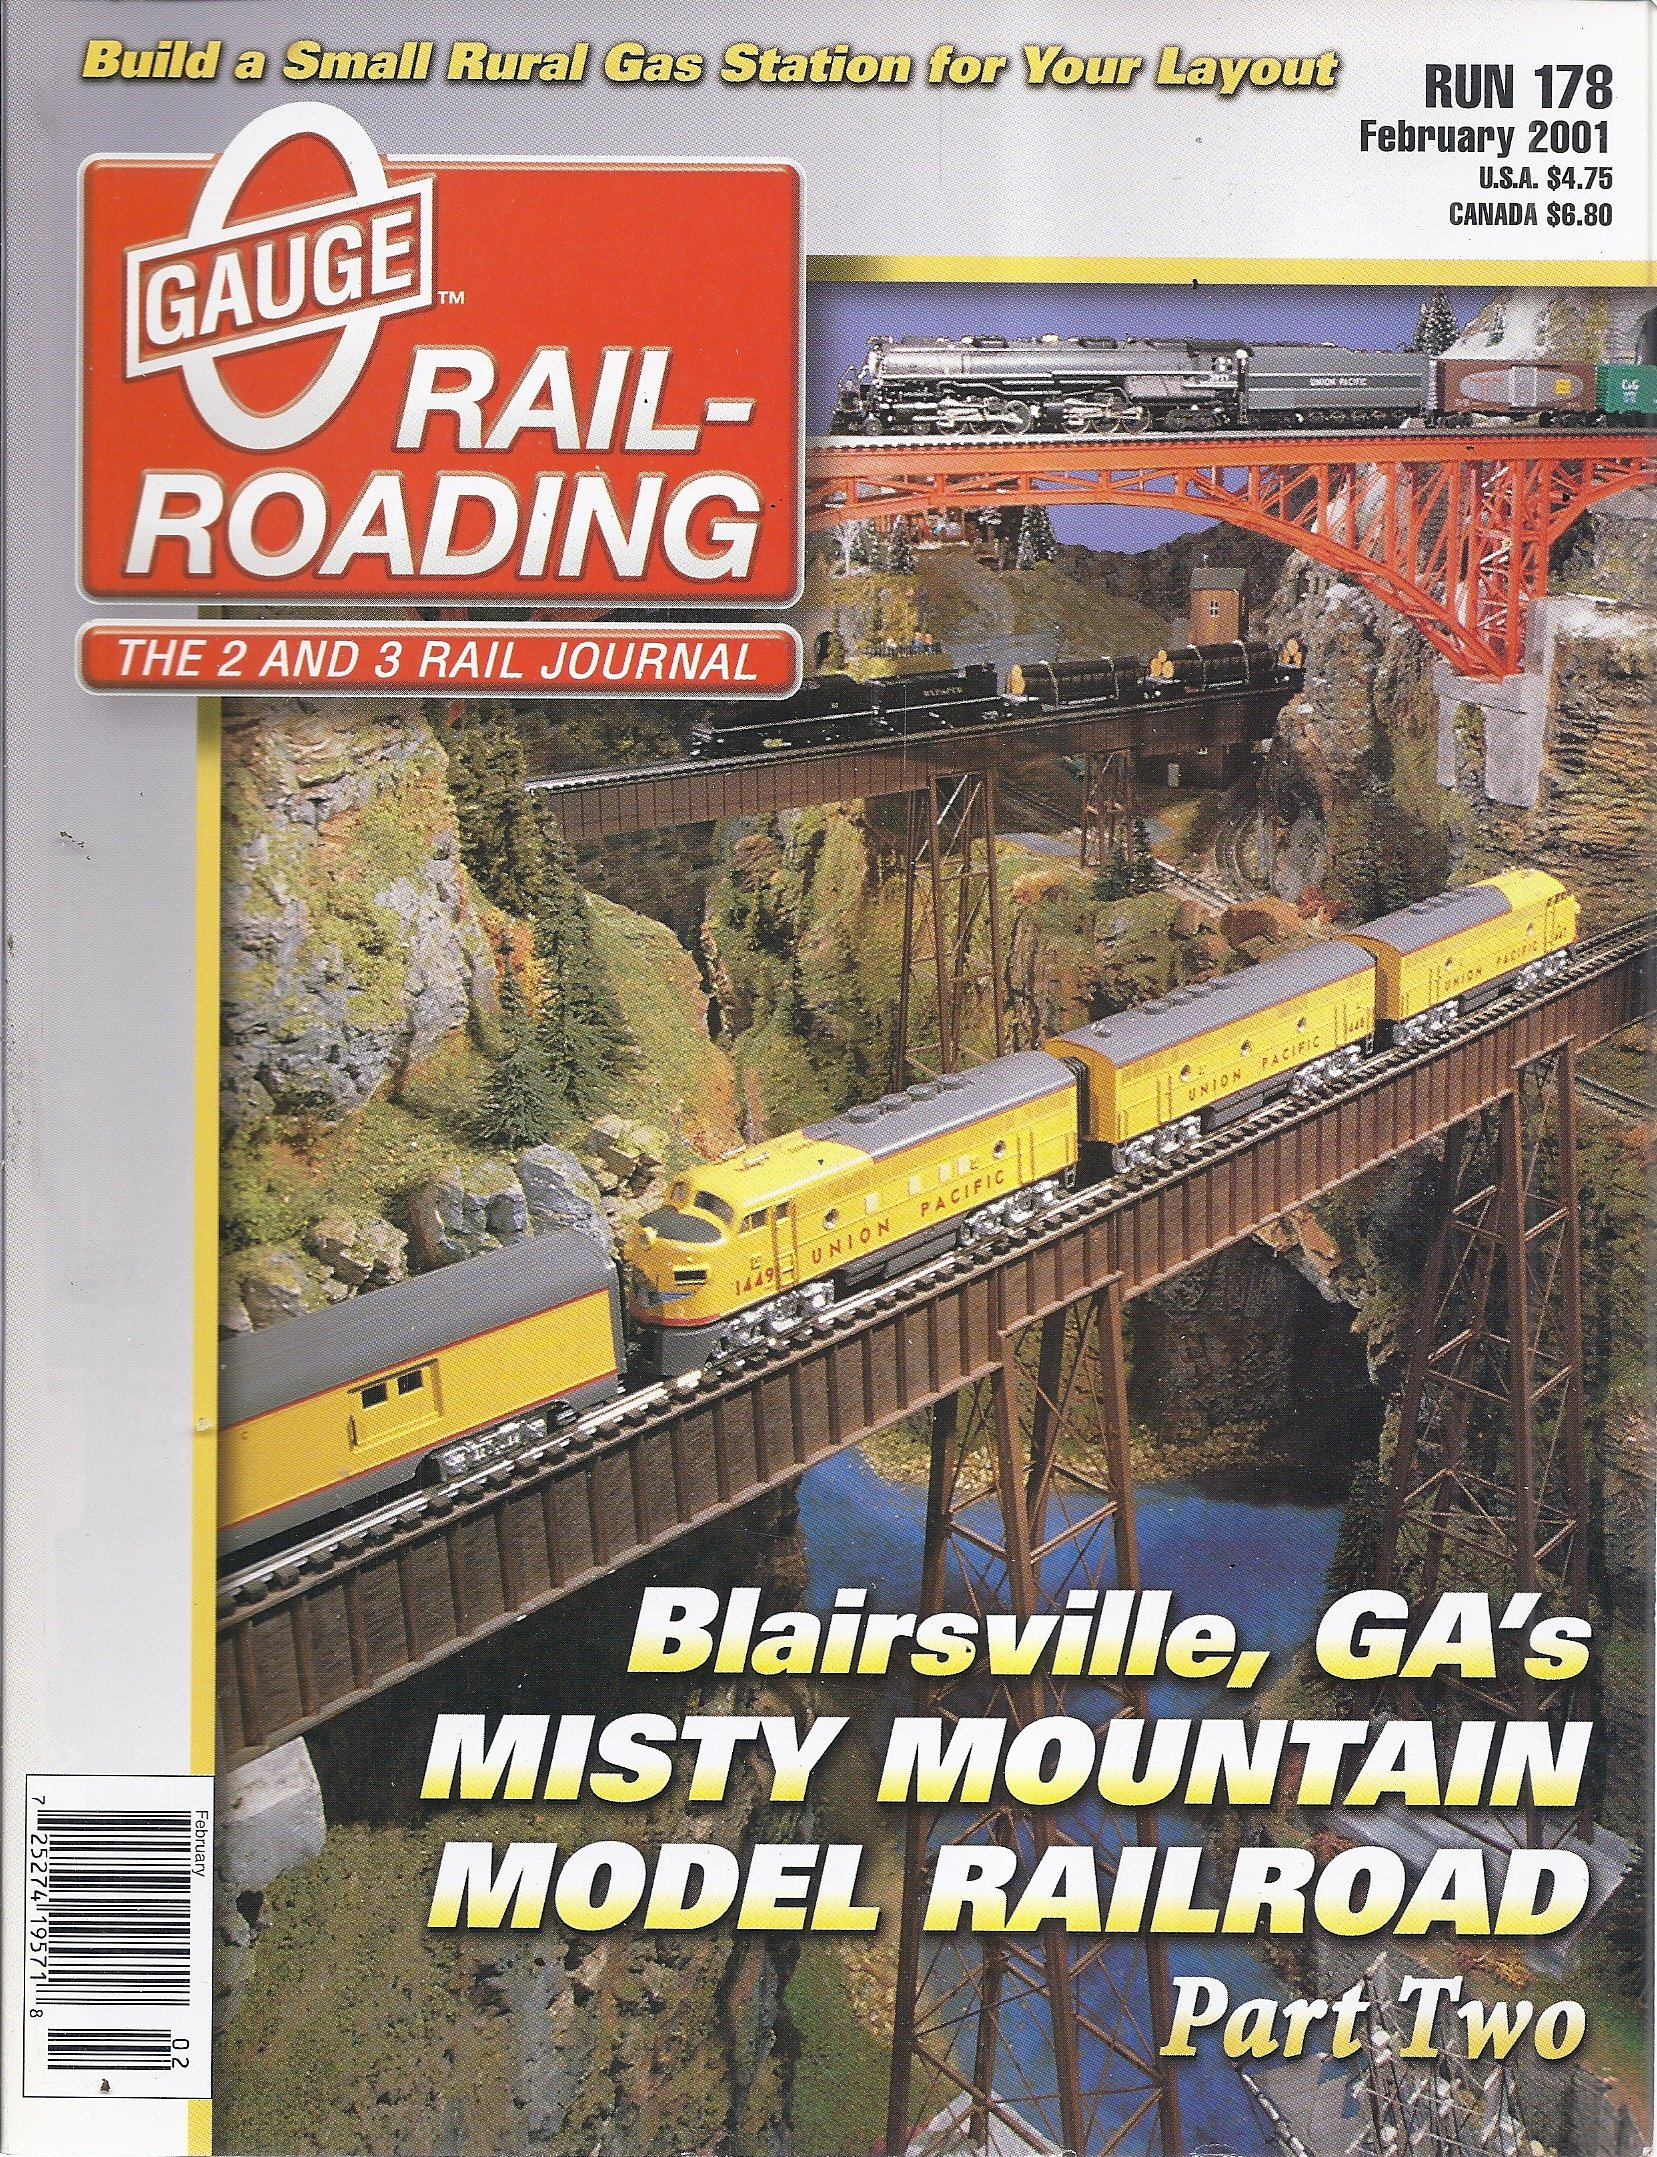 O Gauge Rail-Roading Magazine (Run 178 - February 2001 - Blairsville, GA's Misty Mountain Model Railroad, Part 2) PDF